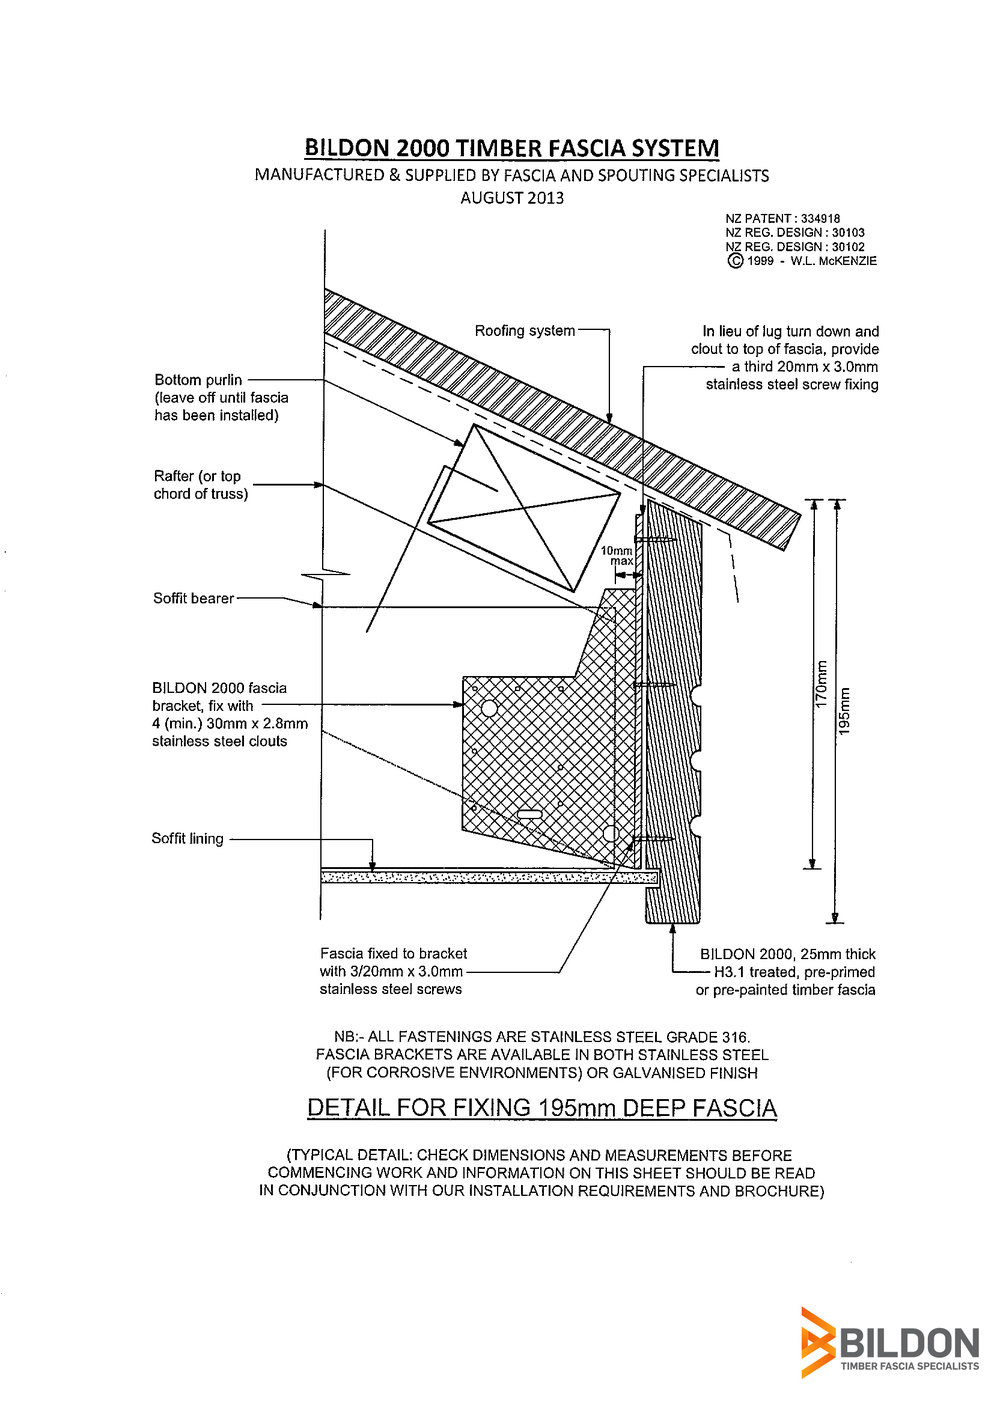 Detail for Fixing 195mm Deep Fascia.jpg